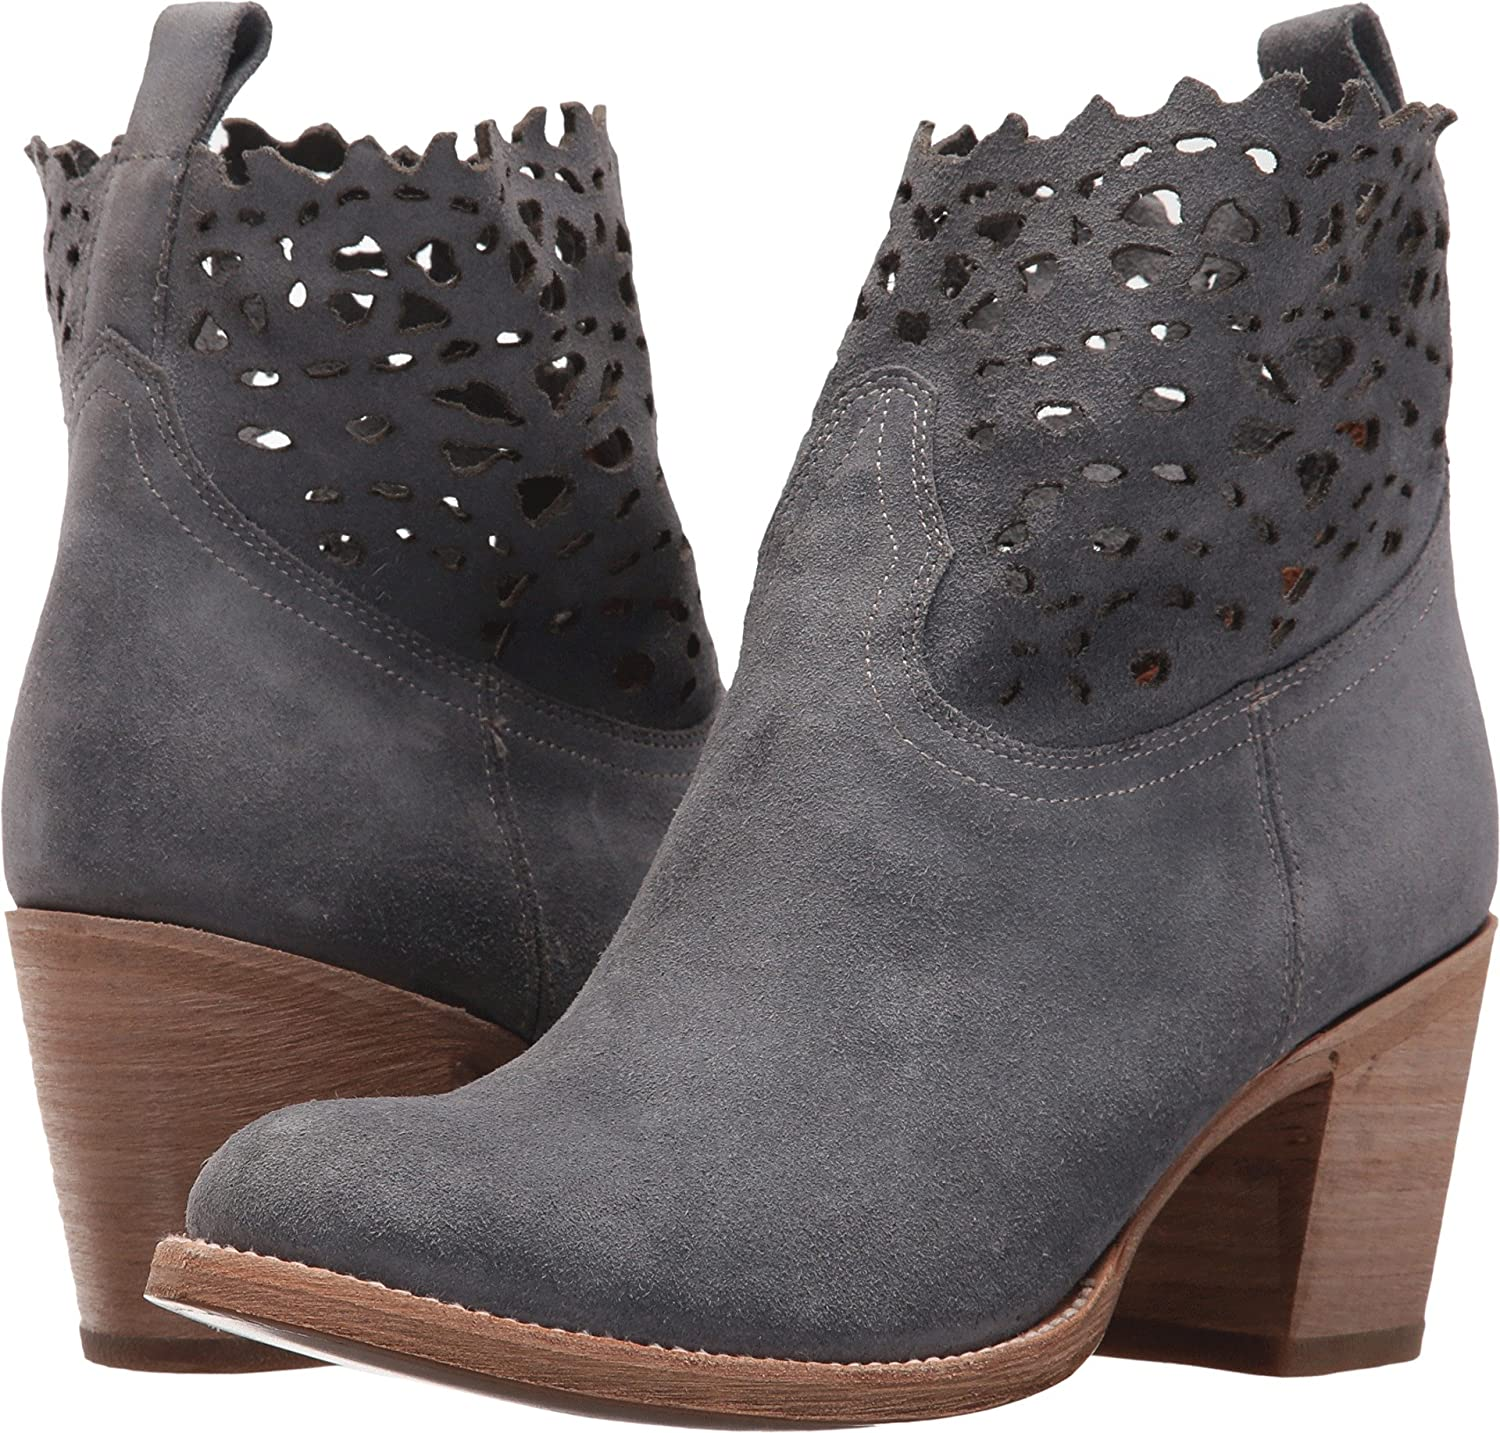 FRYE Women's Grey Suede Victoria Cut Short Boot Round Toe - 79117-Ept B075DC3C83 6 B(M) US|Jeans Soft Oiled Suede